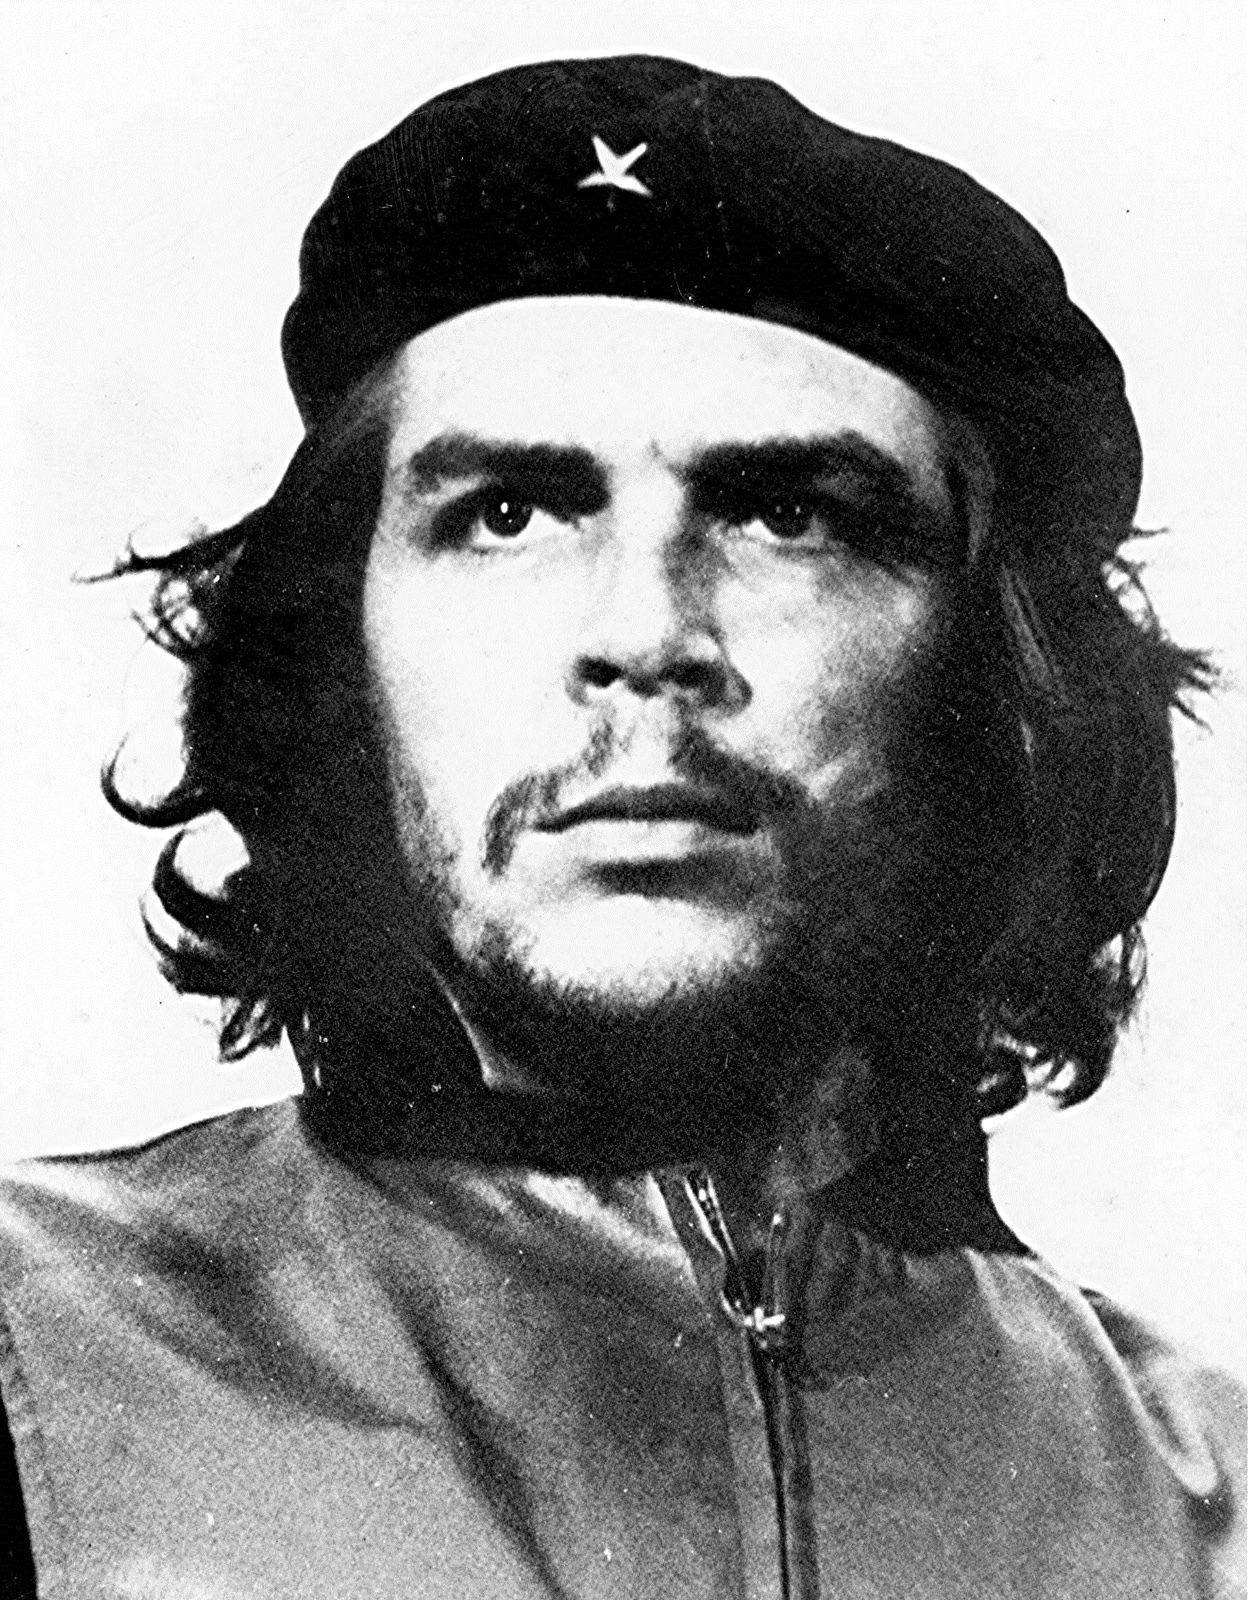 73455-Guerrillero-Heroico-Marxist-revolutionary-Che-Wall-Print-Poster-Affiche